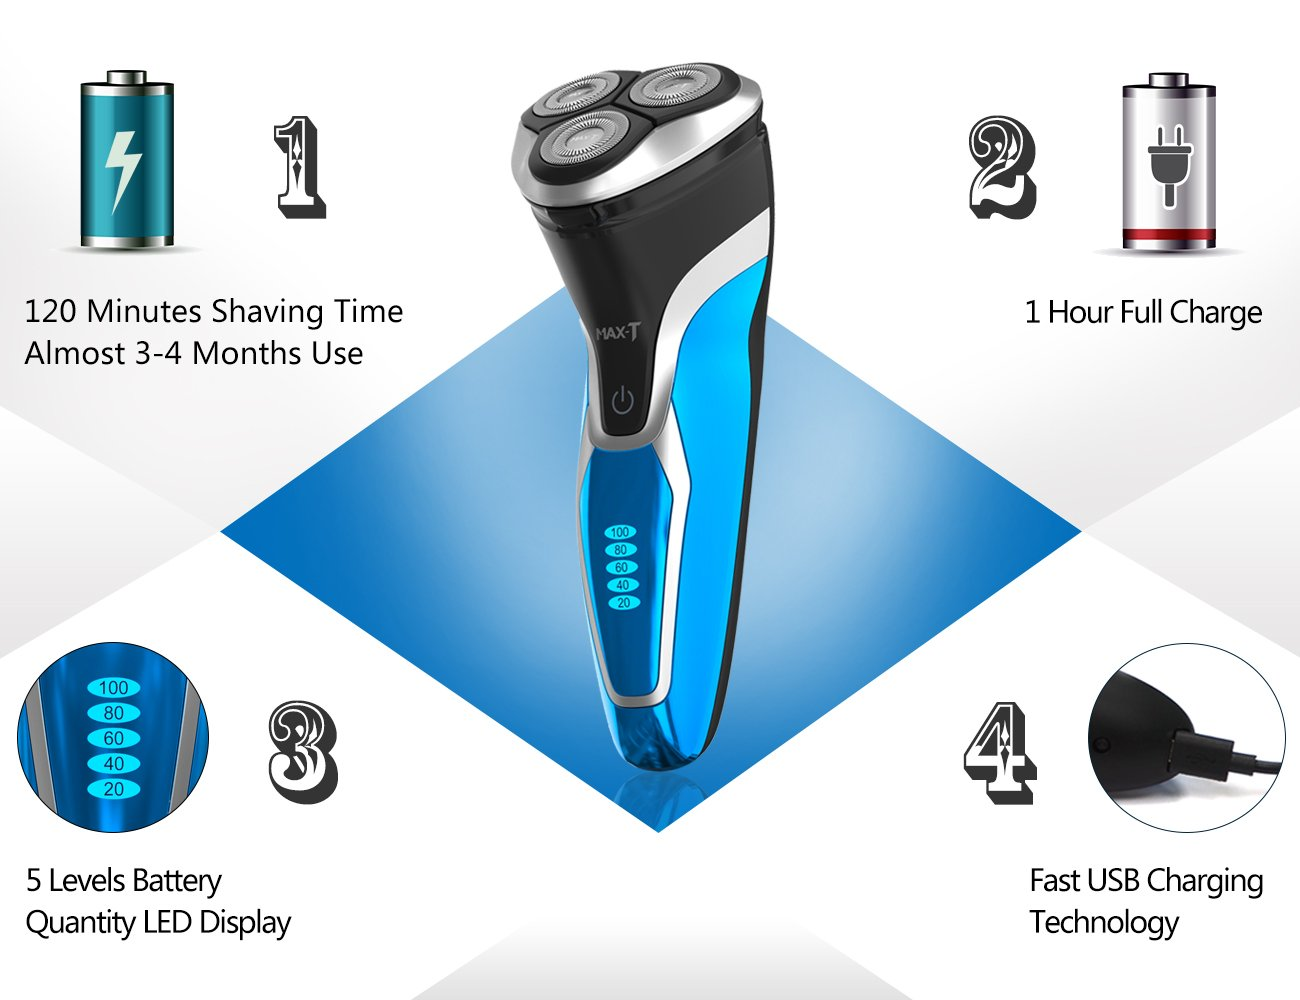 Max-T 3D Rechargeable 100% Waterproof IPX7 Electric Shaver Wet & Dry Rotary Shavers for Men USB Cable Electric Shaving Razors with Pop-up Trimmer, Blue